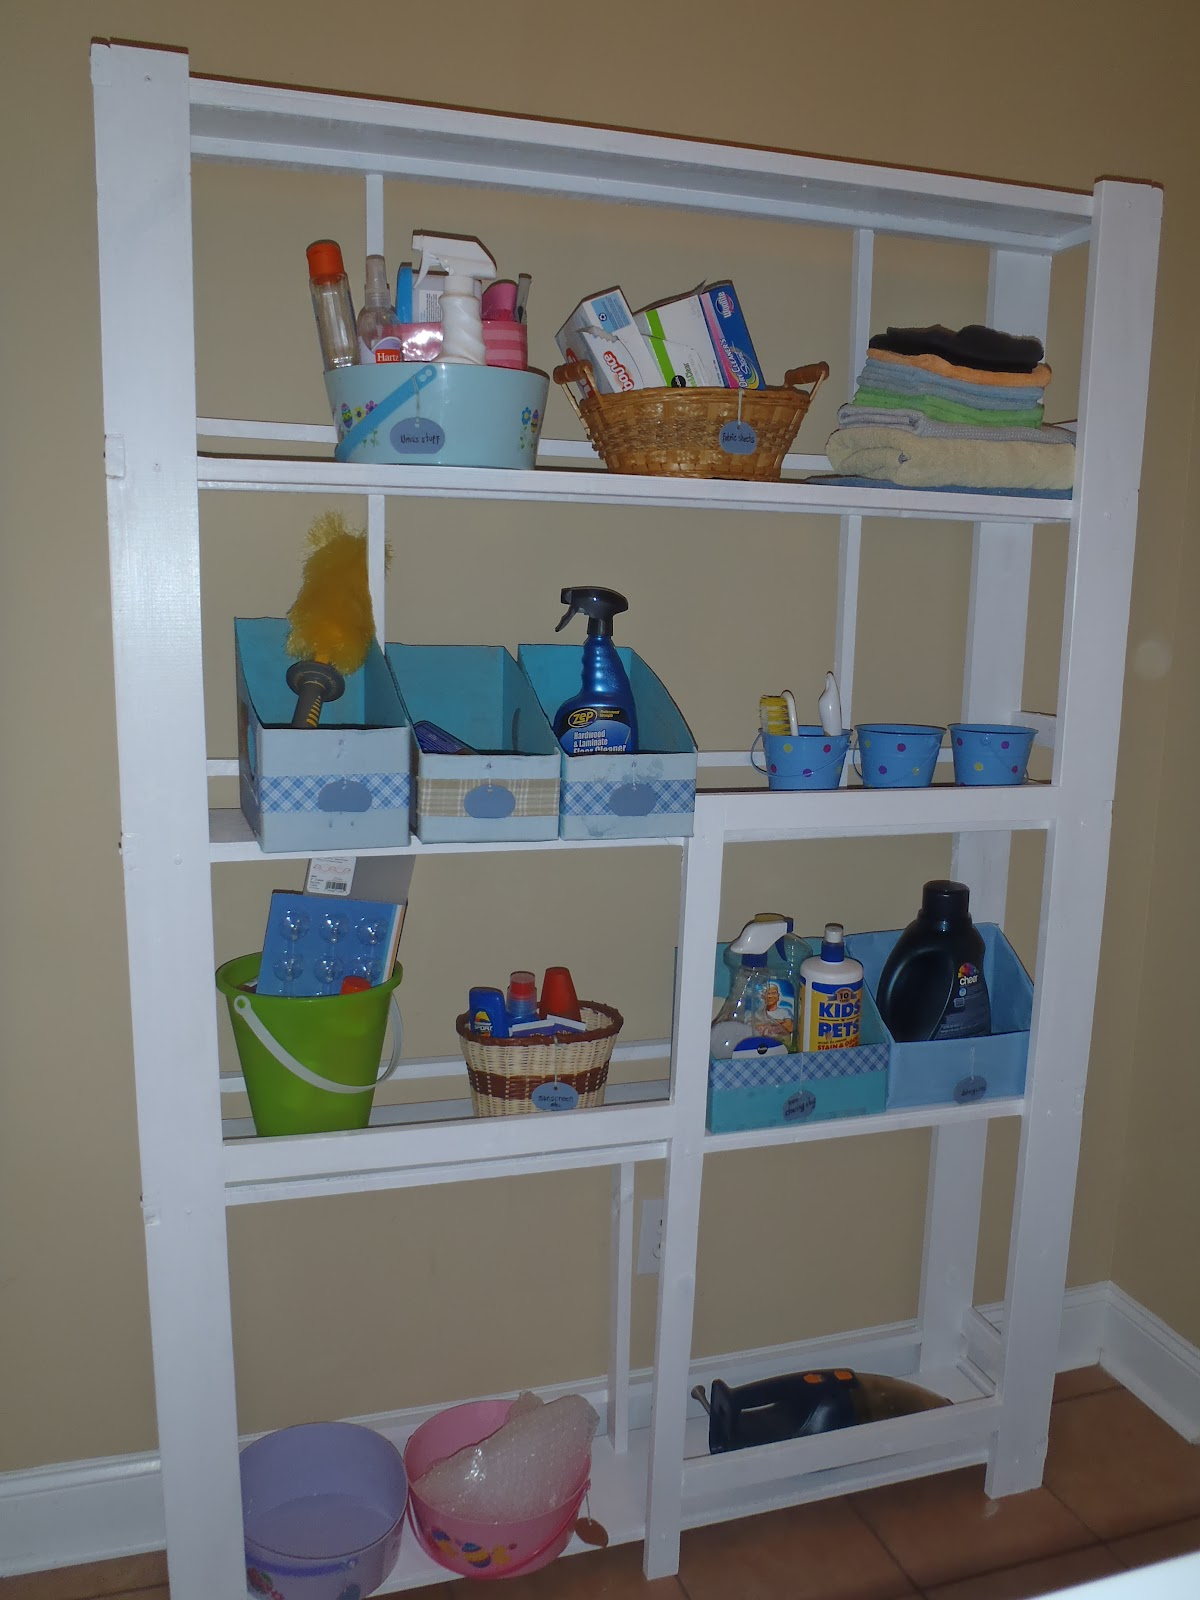 Lazy liz on less laundry room shelf for Laundry room shelving